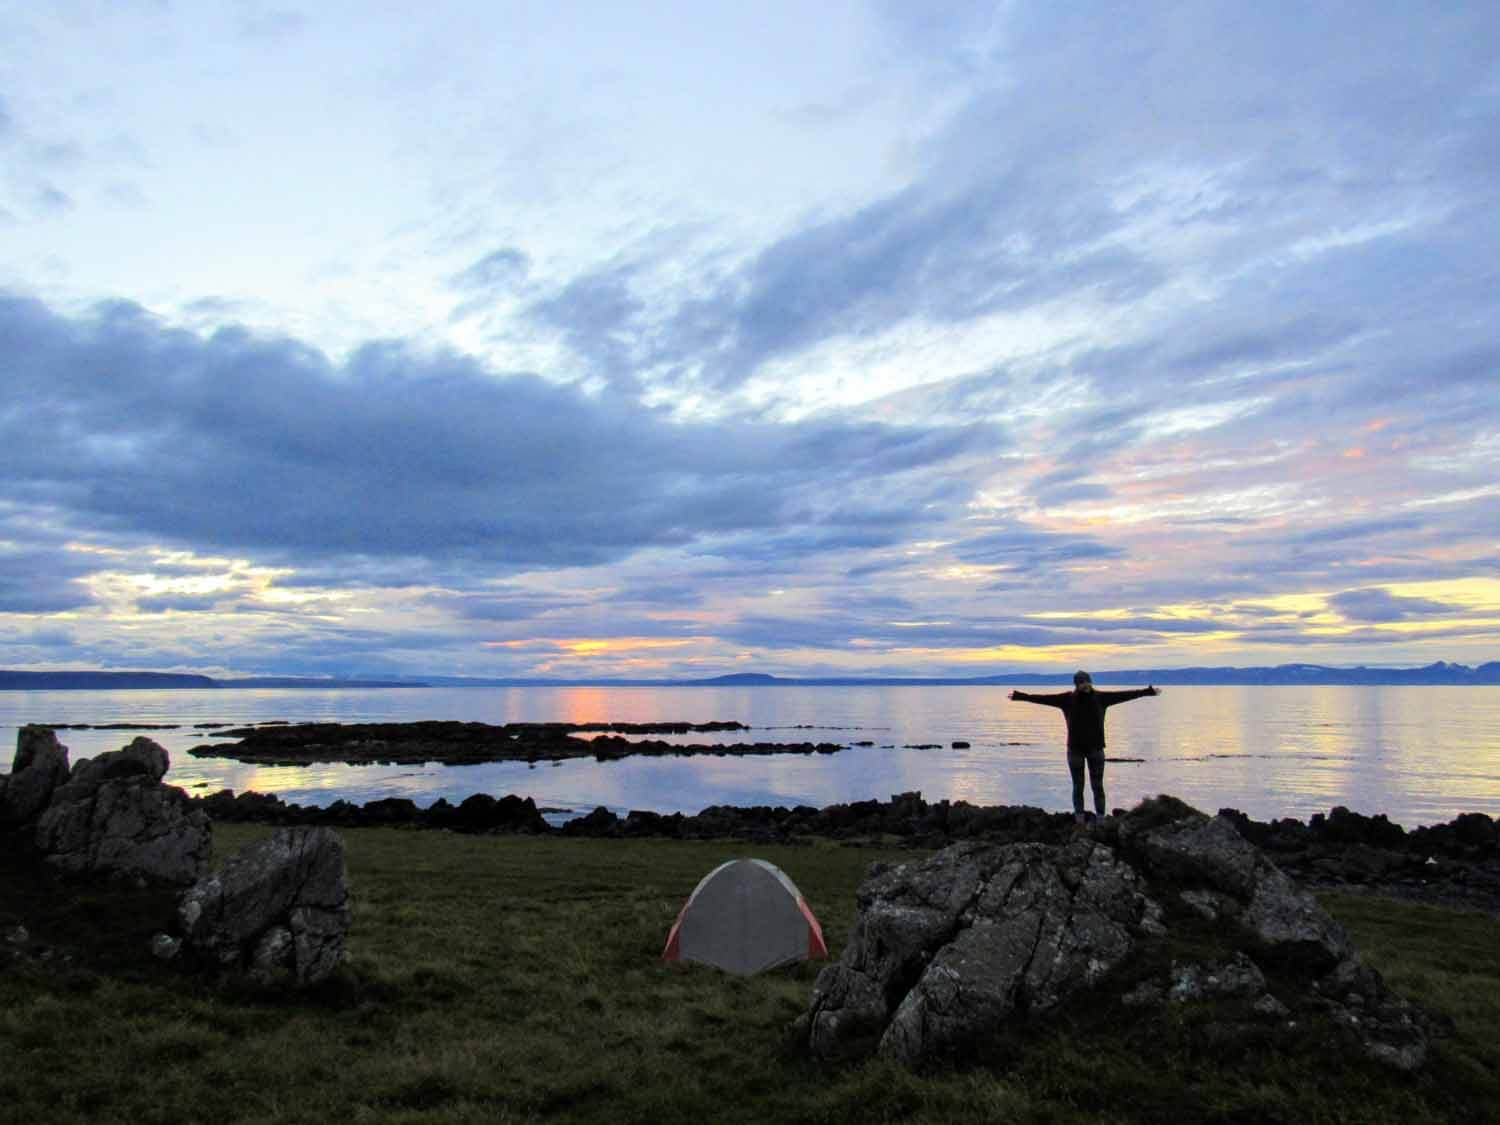 iceland-seal-beach-camping-epic.jpg